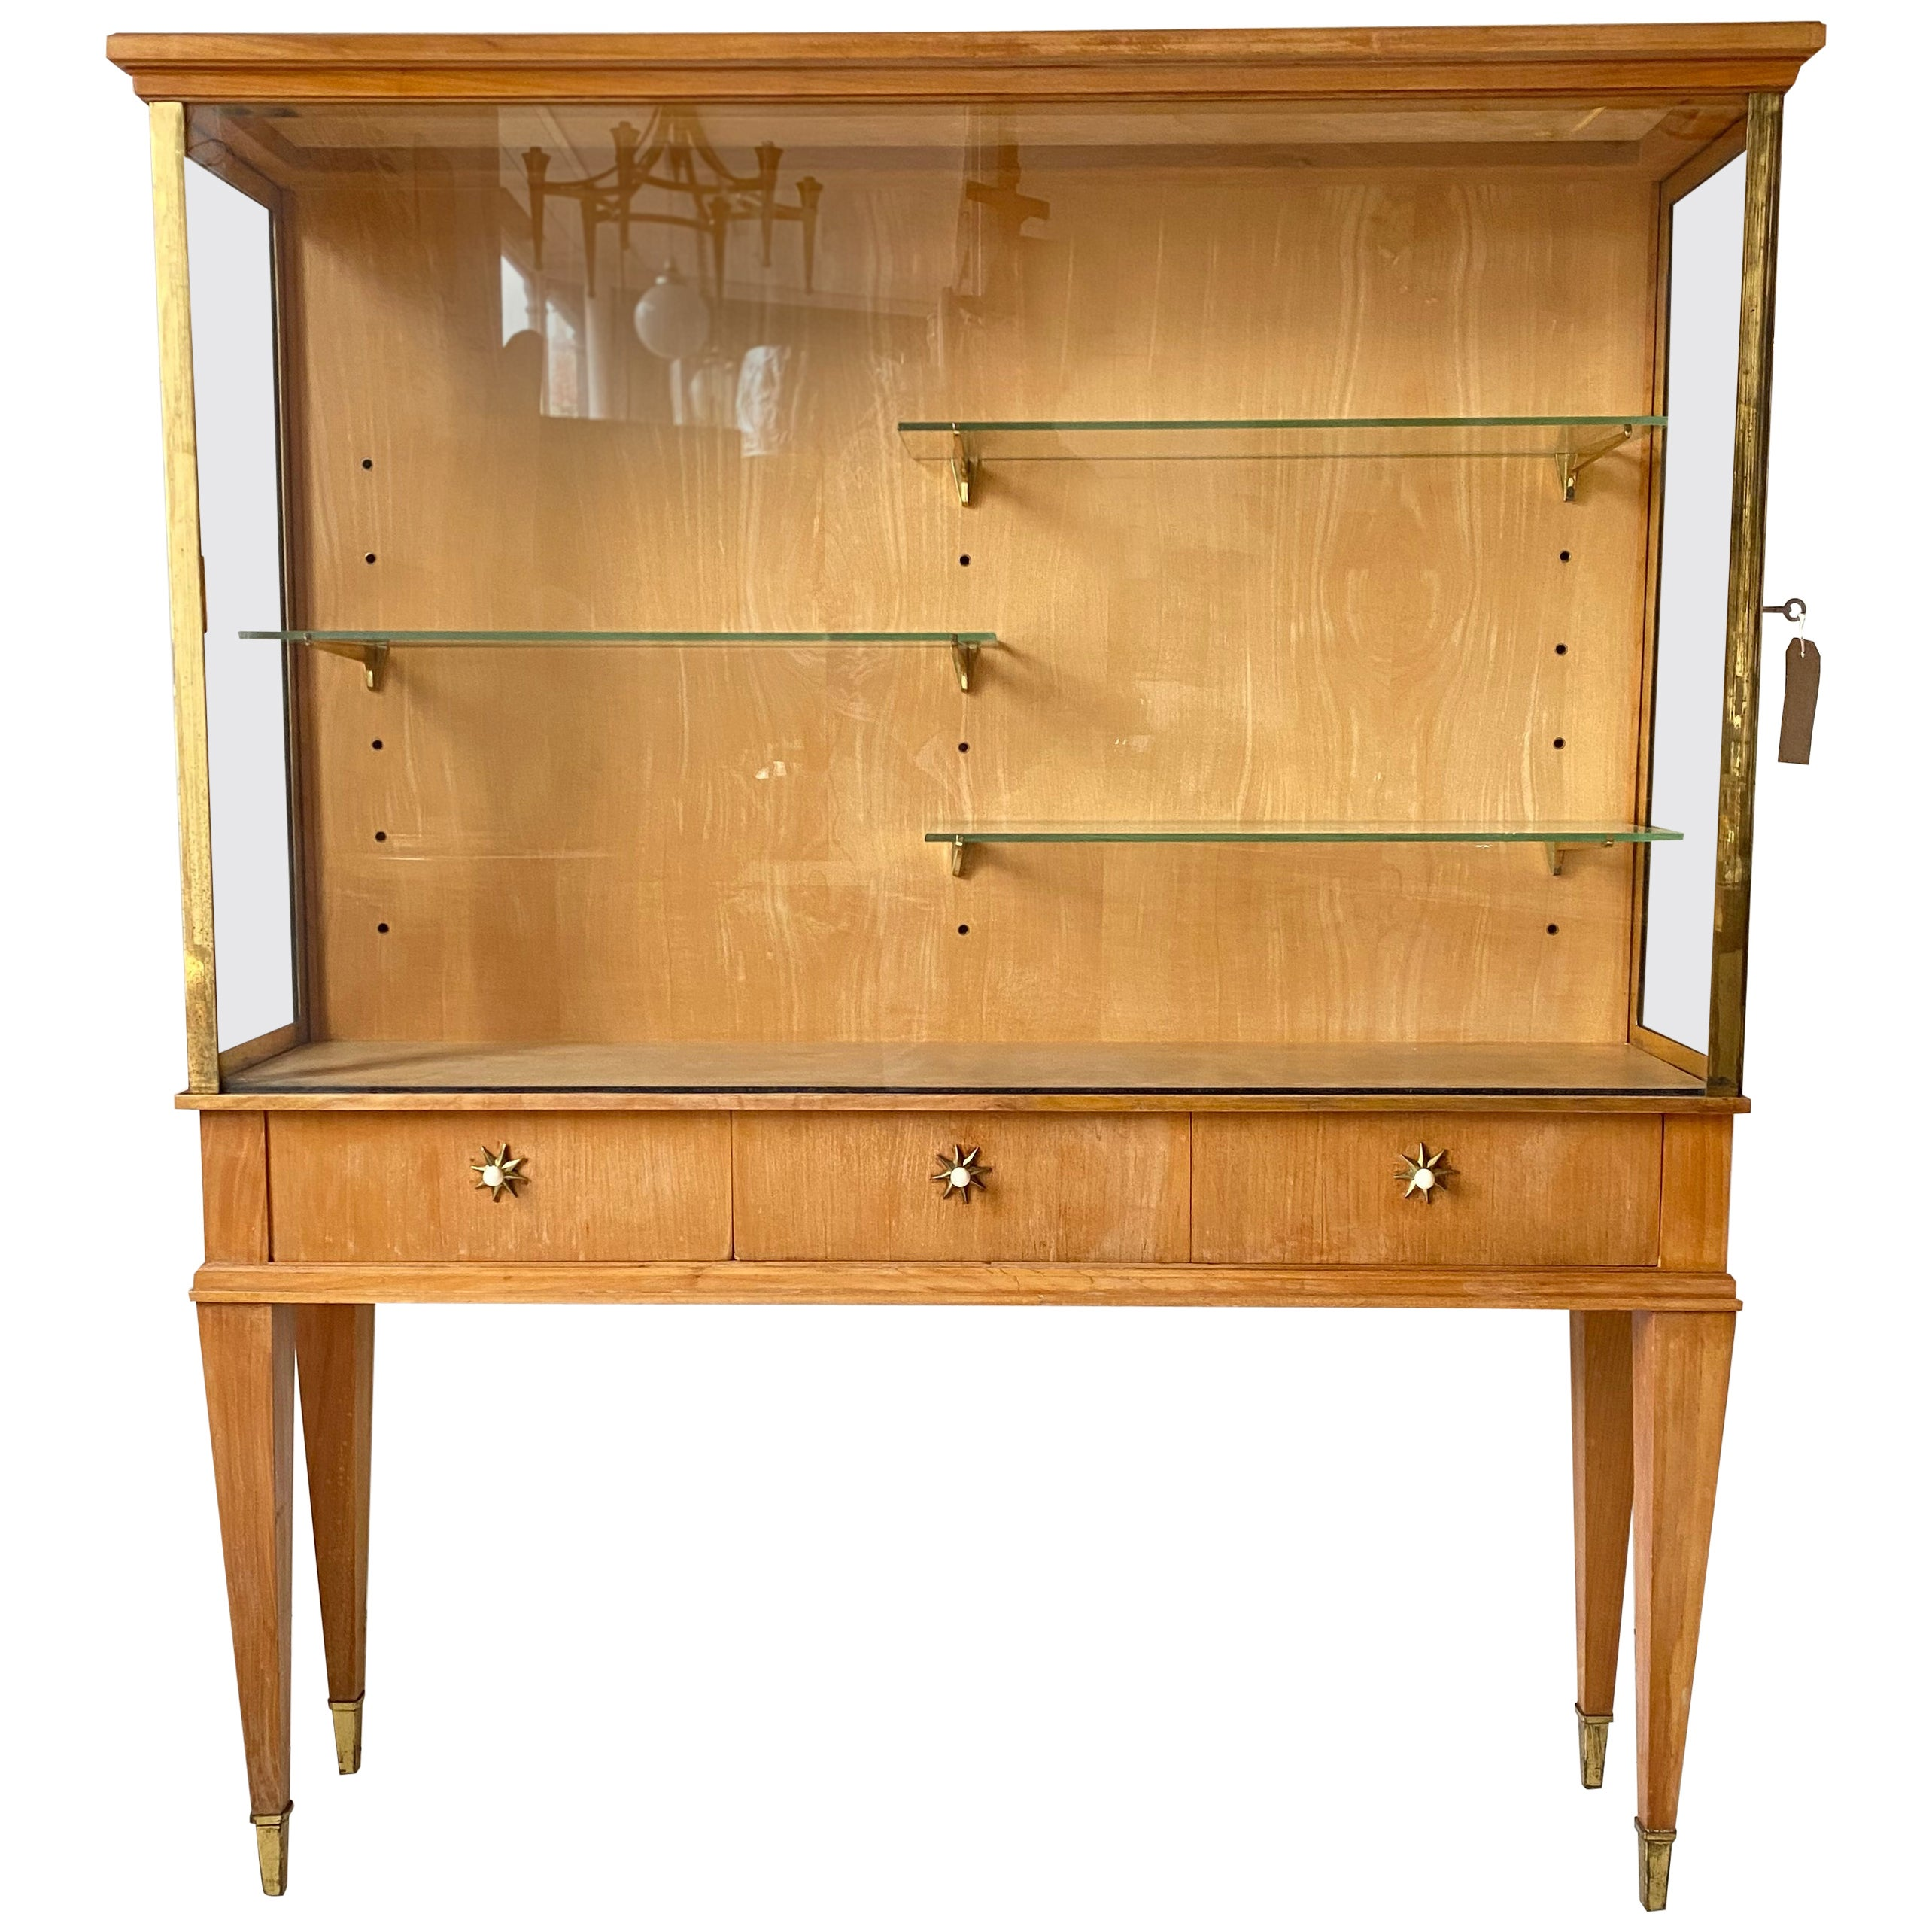 French 1940s Brass Trimmed Vitrine/ Display Cabinet